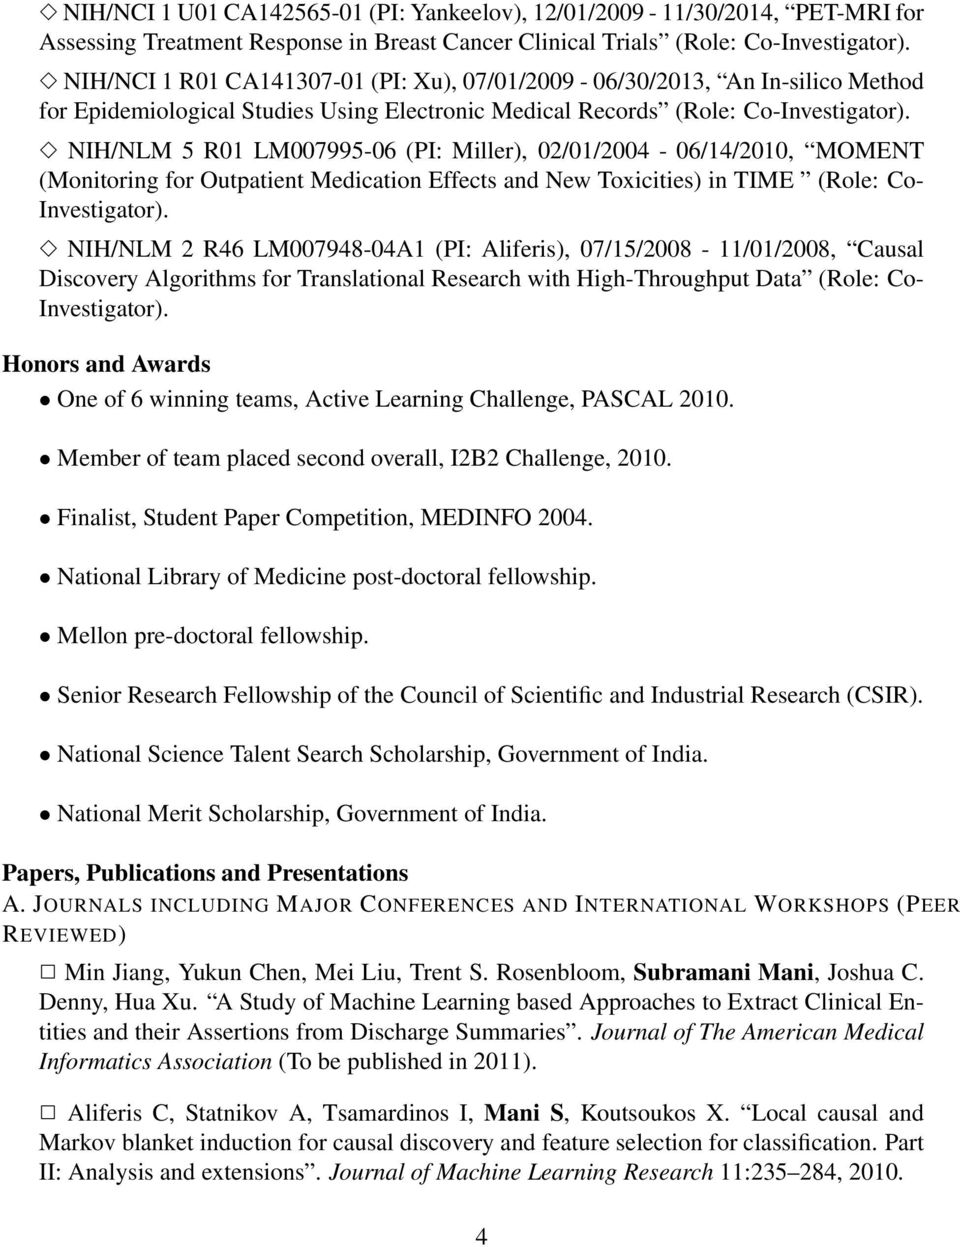 NIH/NLM 5 R01 LM007995-06 (PI: Miller), 02/01/2004-06/14/2010, MOMENT (Monitoring for Outpatient Medication Effects and New Toxicities) in TIME (Role: Co- Investigator).